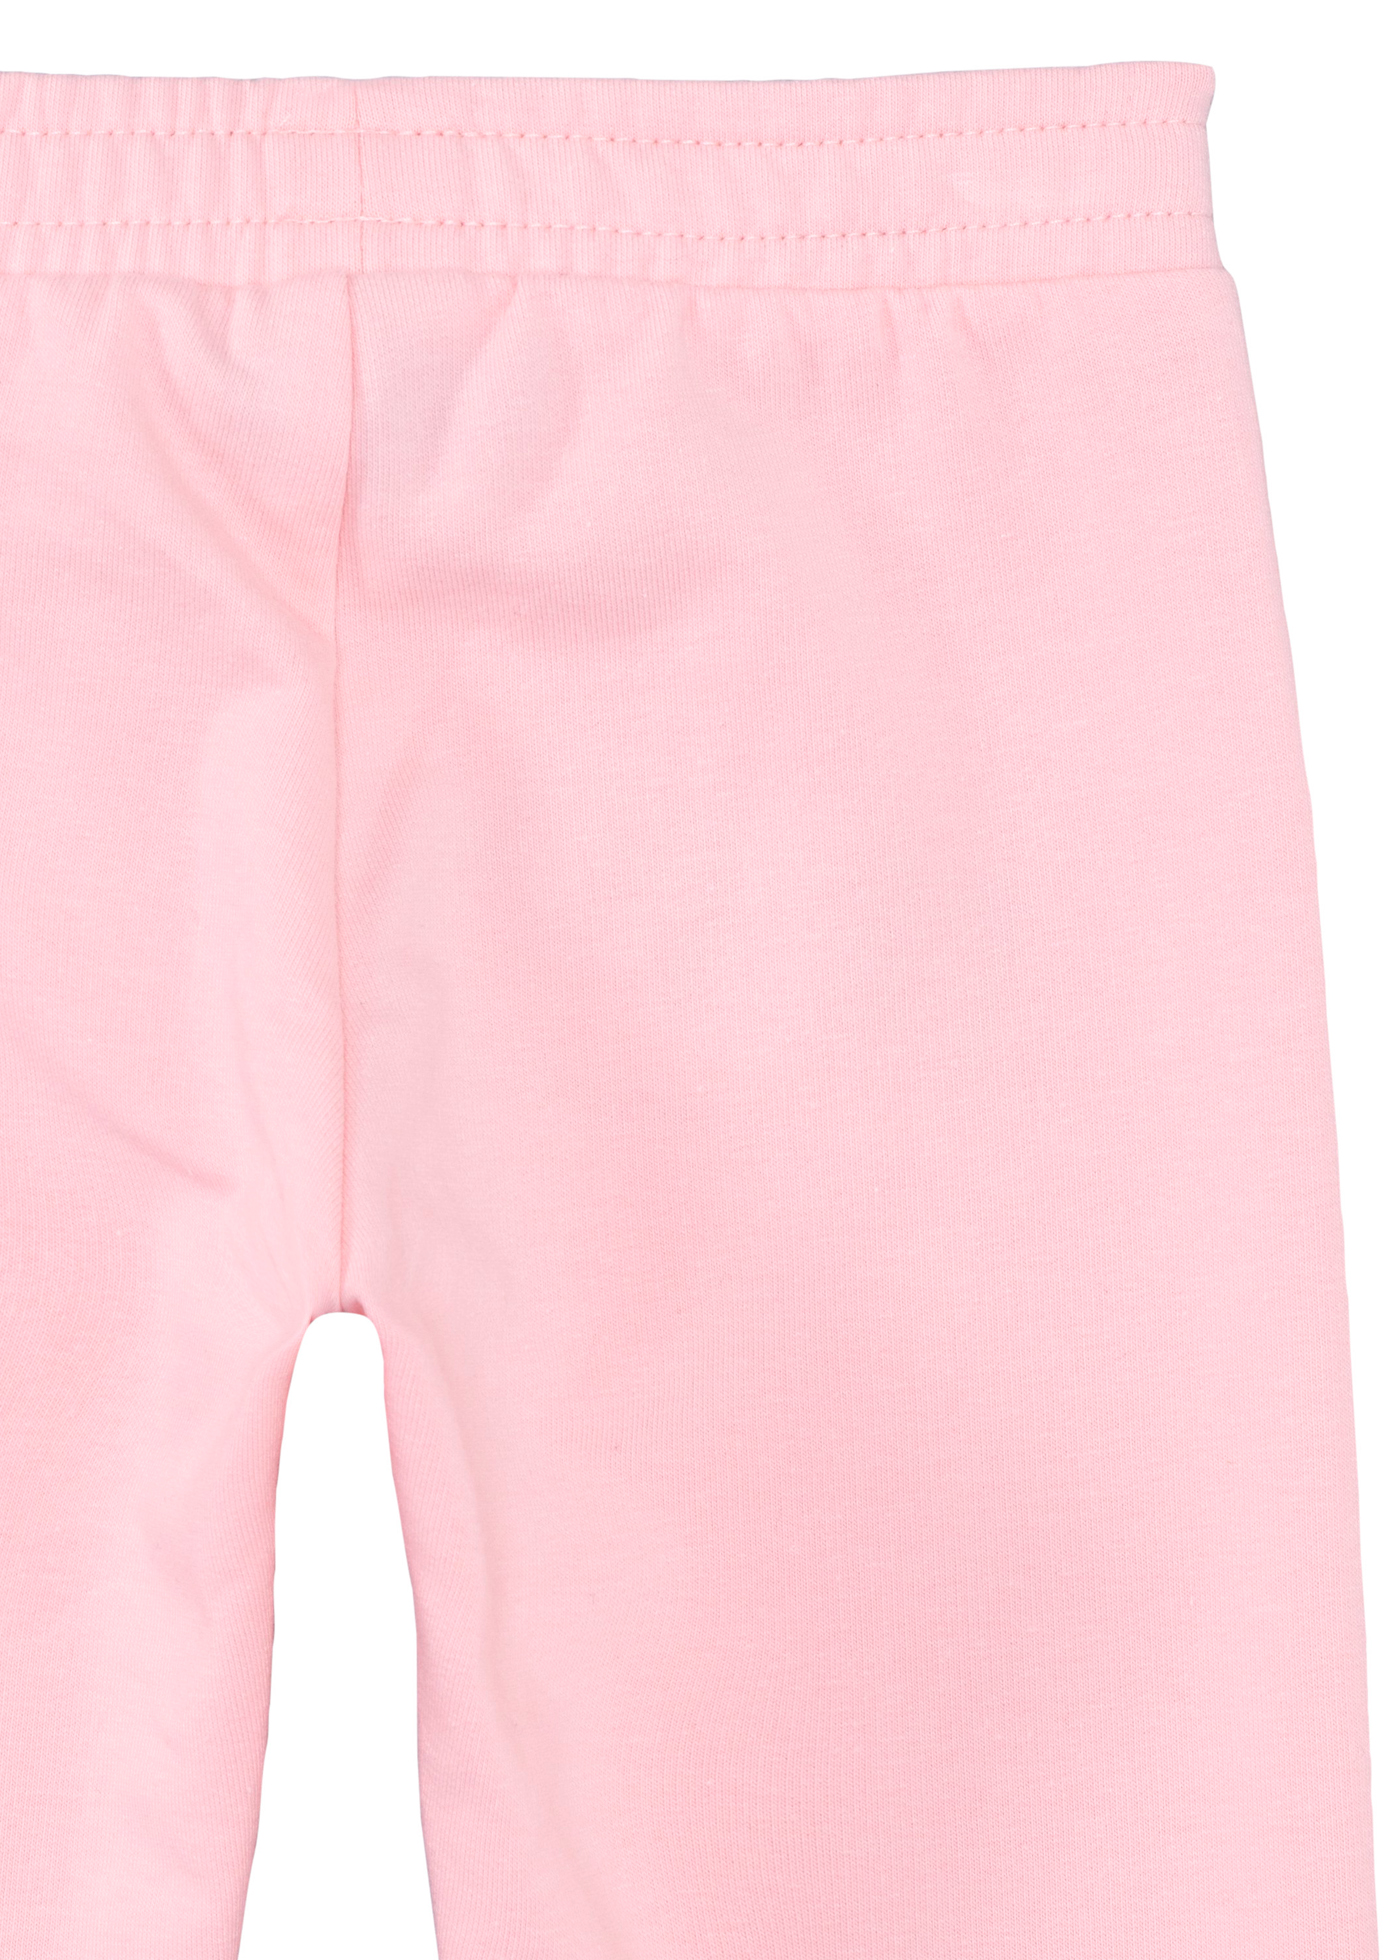 MOSCHINO Trouser image number 3